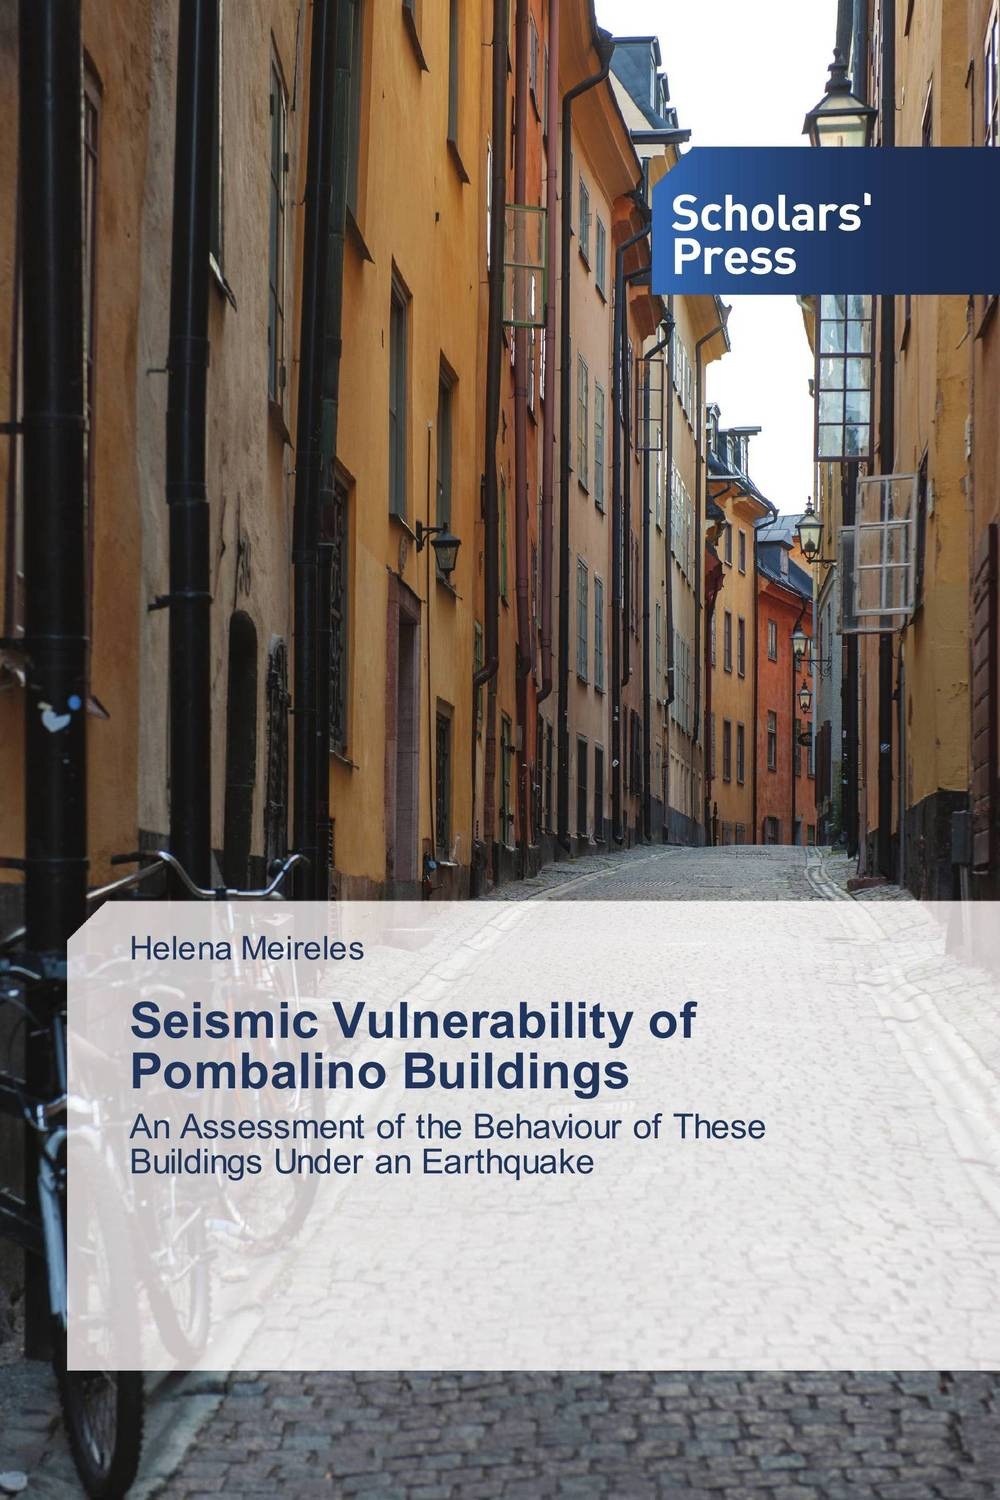 Seismic Vulnerability of Pombalino Buildings